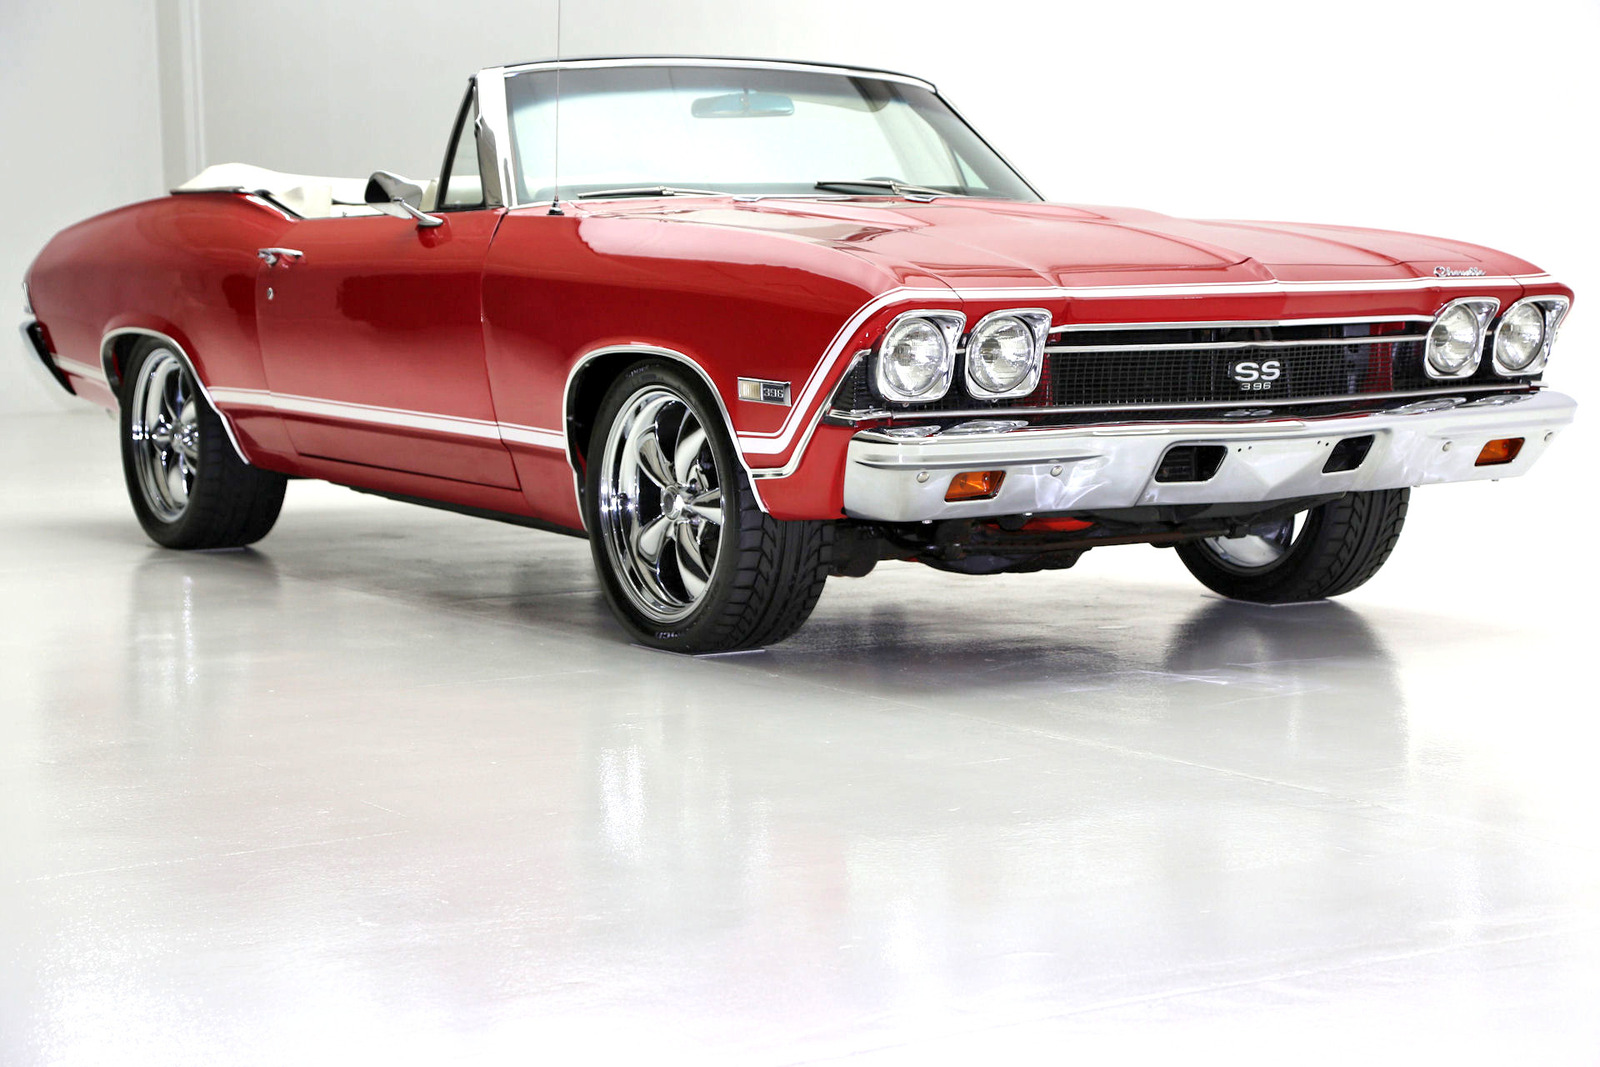 Primary image for 1968 Chevrolet Chevelle Convertible 4 Speed 24 X 36 inch poster